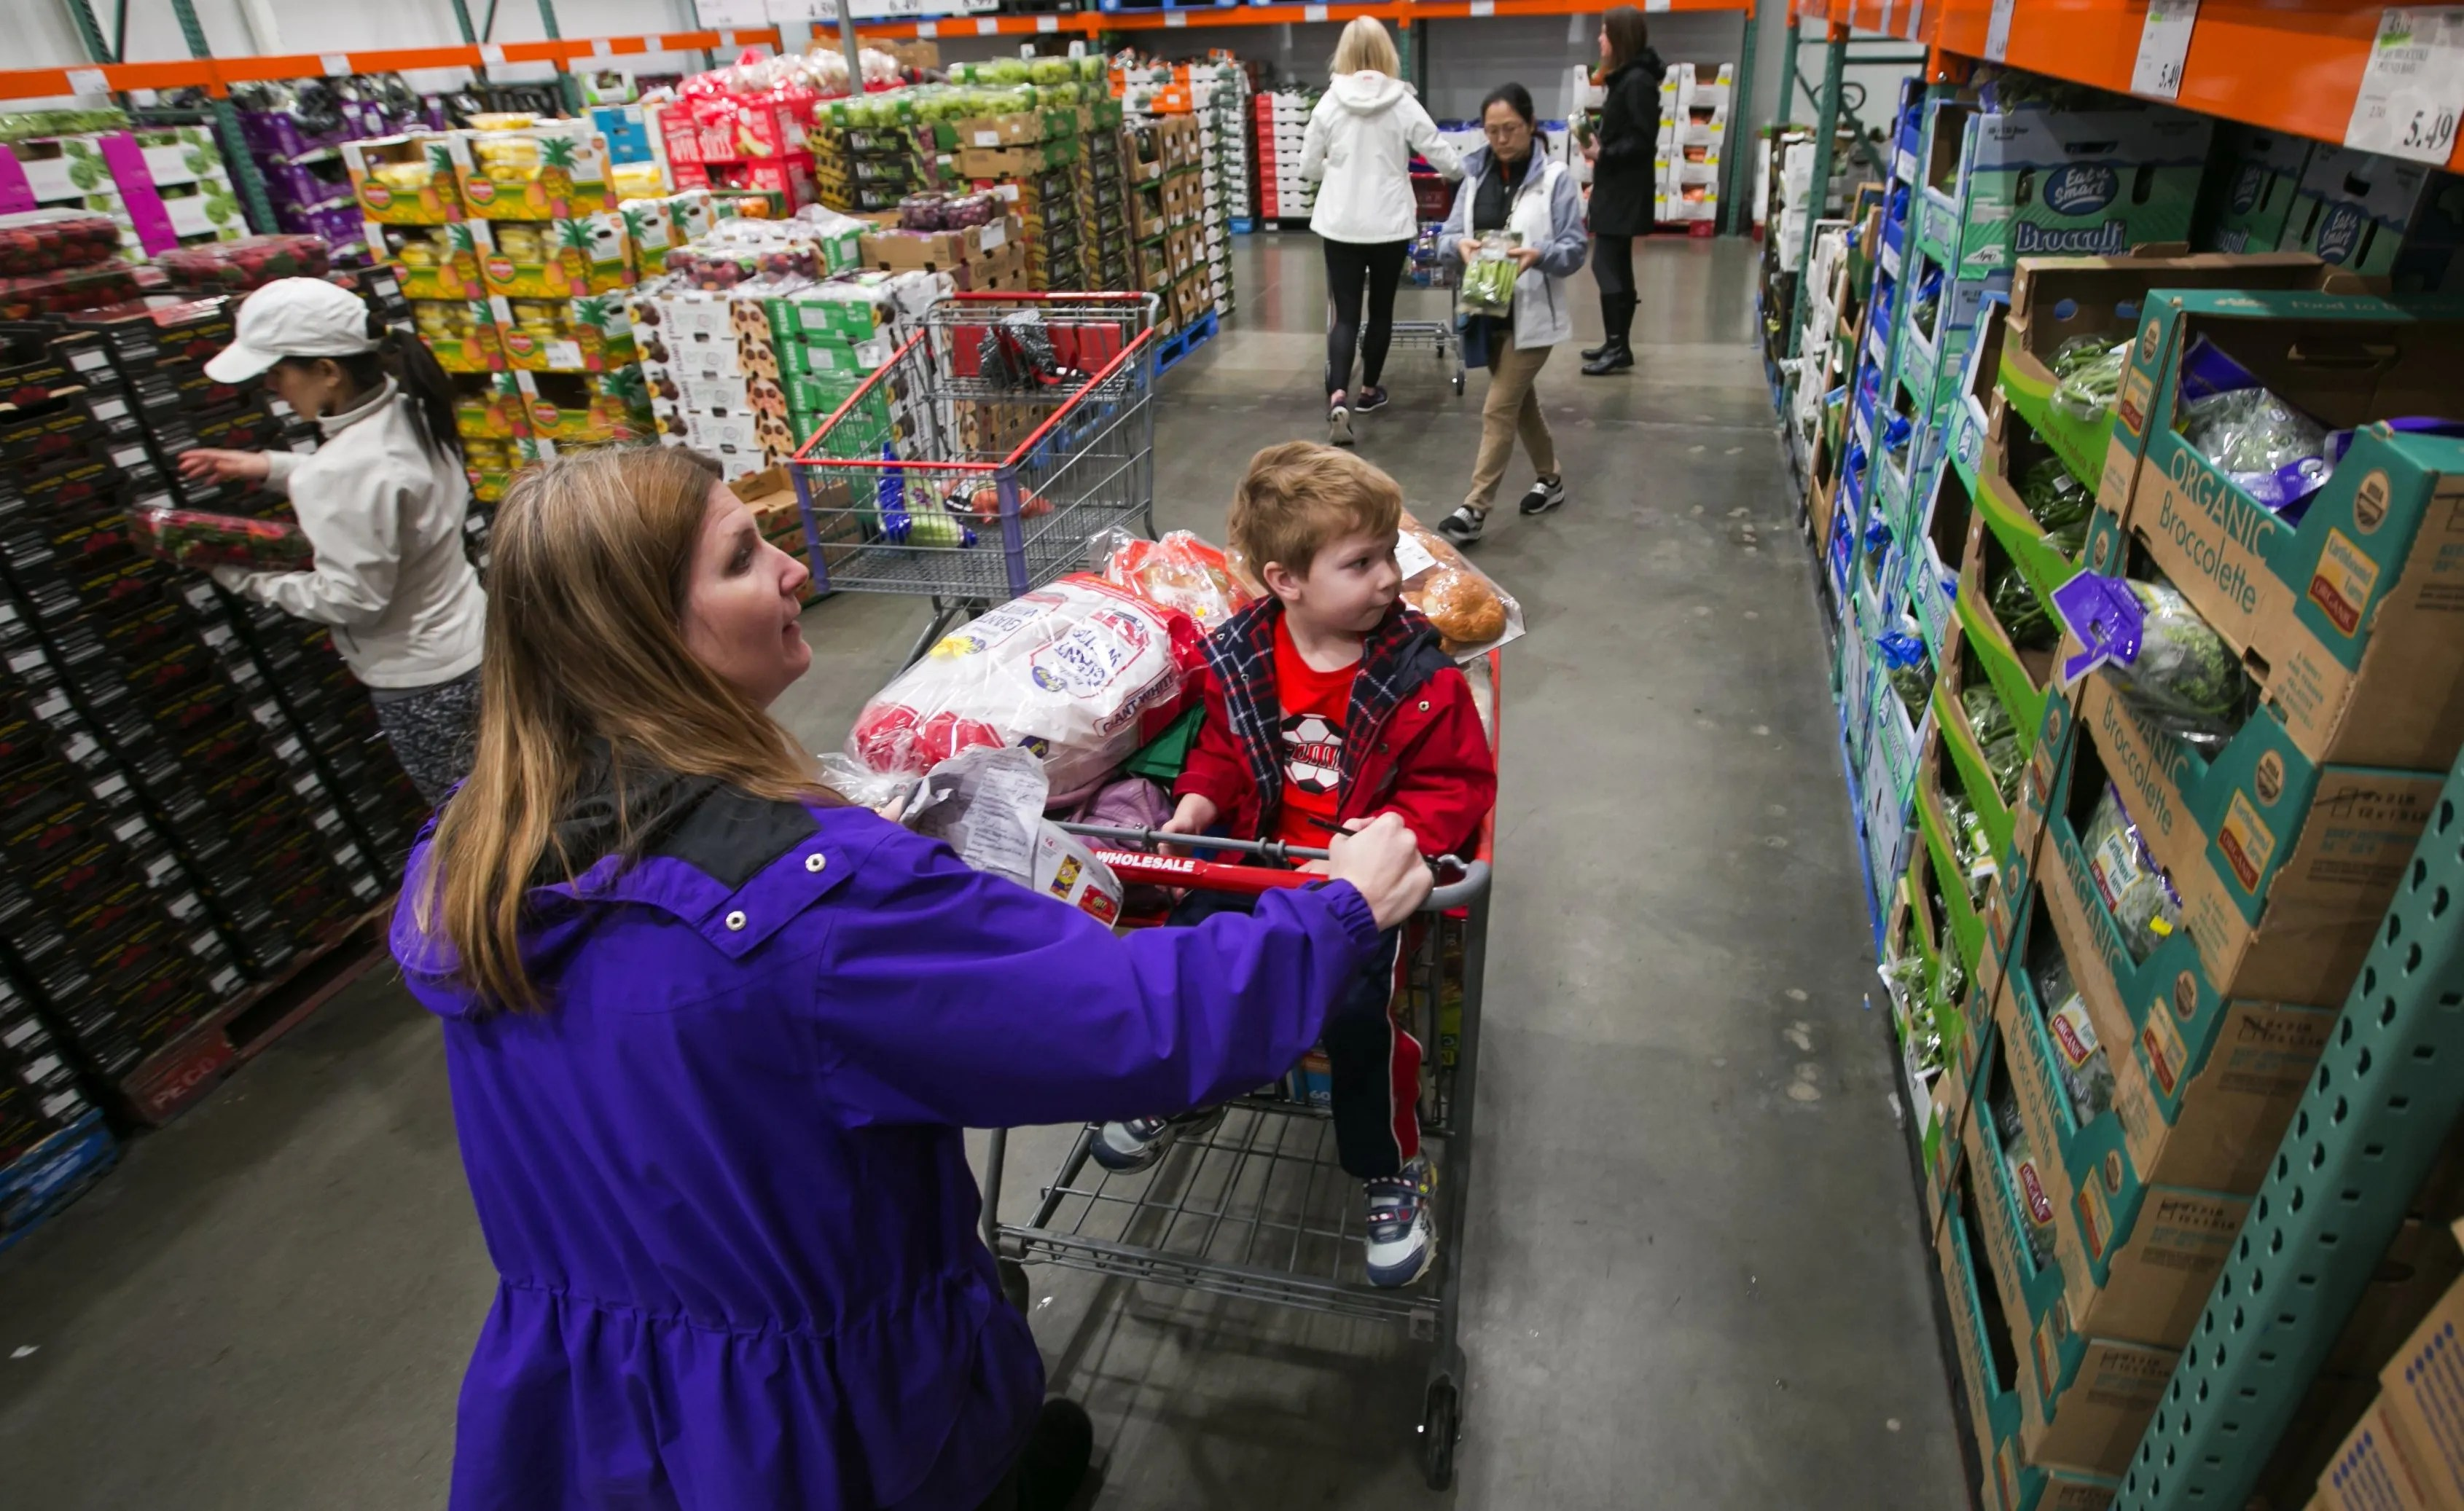 Kimberly Fee pushes a shopping cart holding her son, Cameron, 4, at Costco in Issaquah. Costco is working to boost its supply of organics. (Bettina Hansen/The Seattle Times)